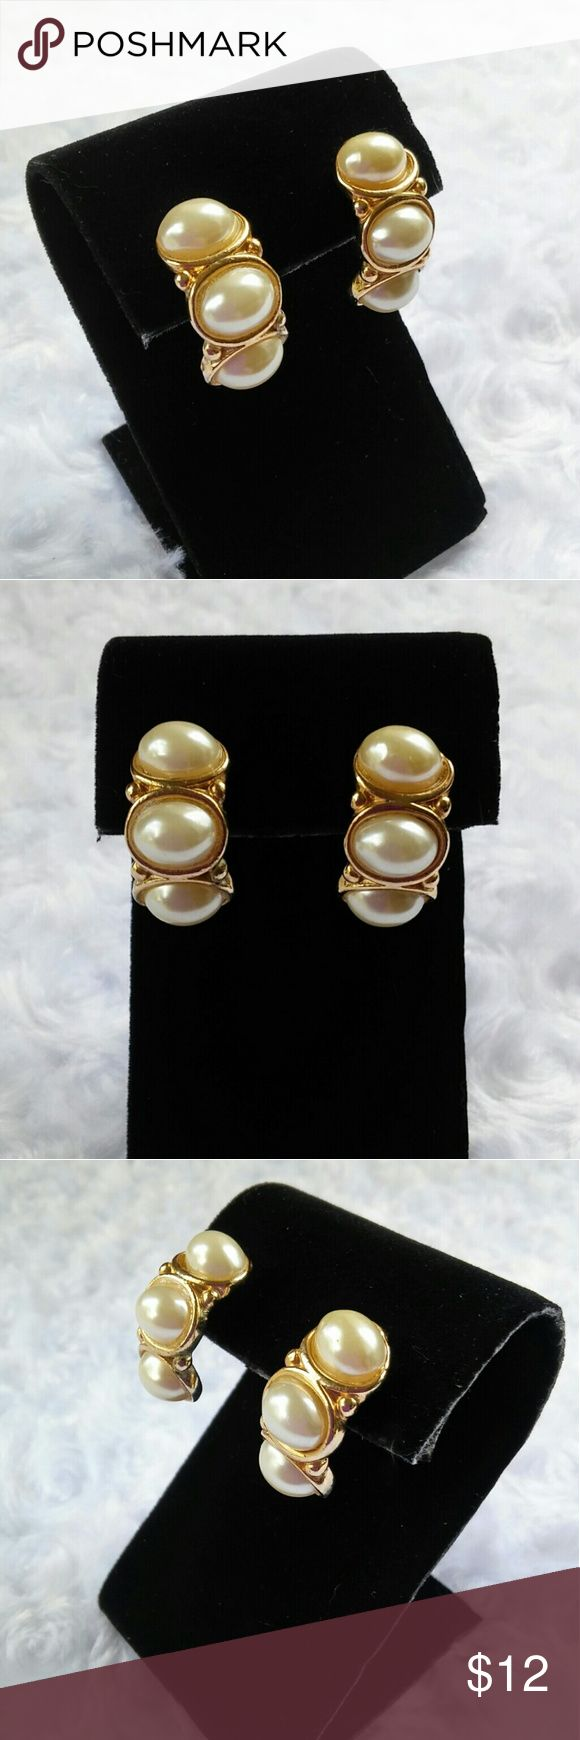 """Faux Pearl Vanish In Hoop Earrings These semicircular earrings have 3 oval faux pearl cabochon set in gold tone metal. Post back. In excellent used condition, no finish loss on the metal or pearls. They measure 1"""" in length and 1/2"""" wide. These are high quality costume jewelry purchased at Macy's. Jewelry Earrings"""